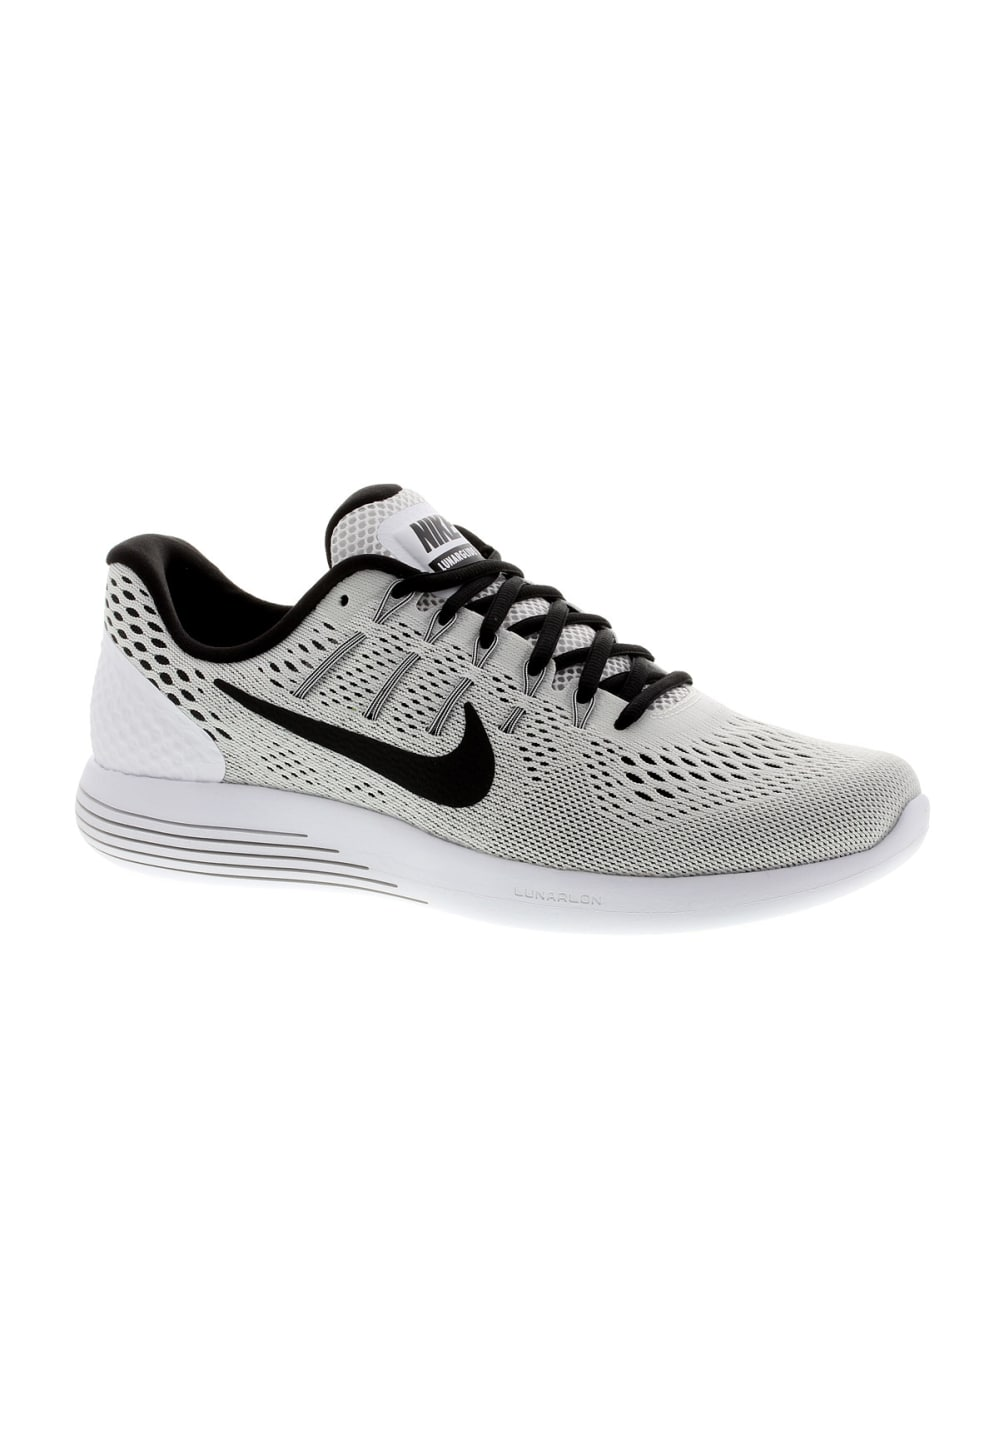 super popular 3d075 e6f66 Nike Lunarglide 8 - Running shoes for Women - Grey